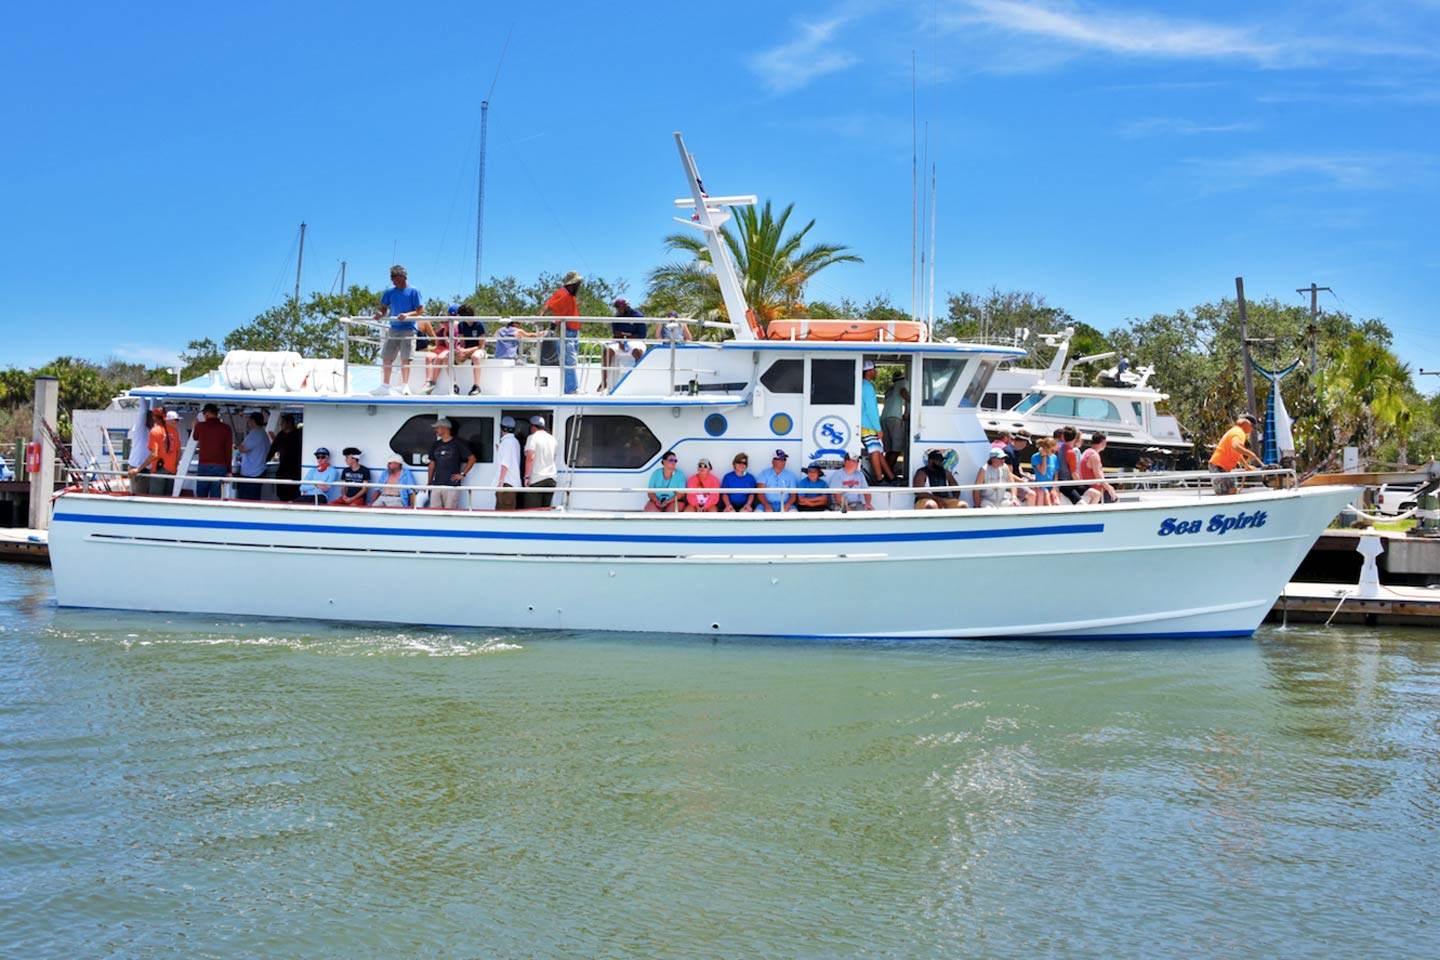 Party boat with multiple anglers heading out in New Smyrna Beach